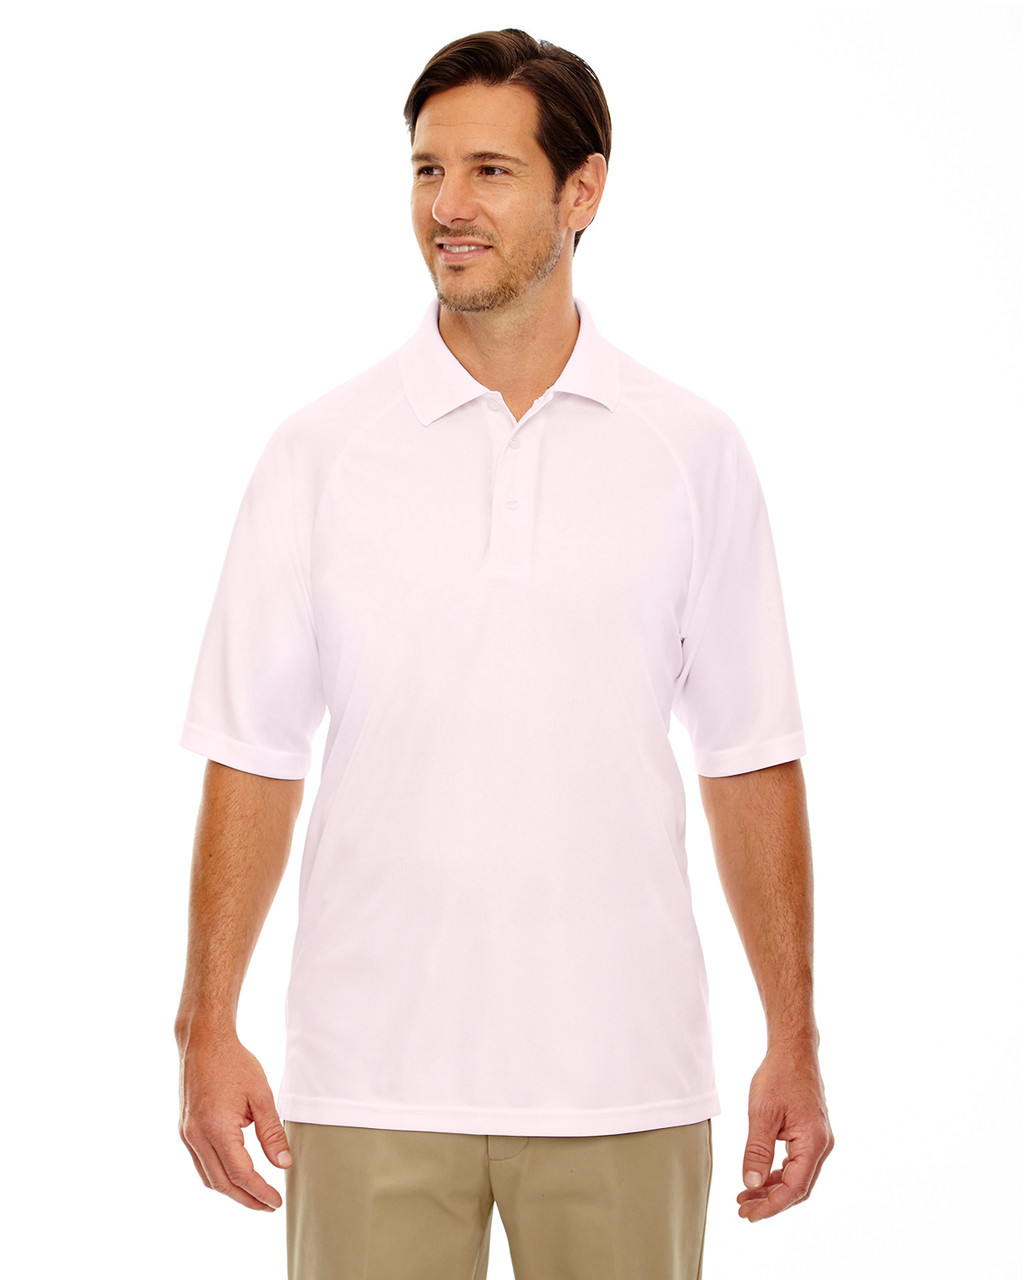 Powder Pink - 85080 Extreme Men's Eperformance™ Pique Polo Shirt